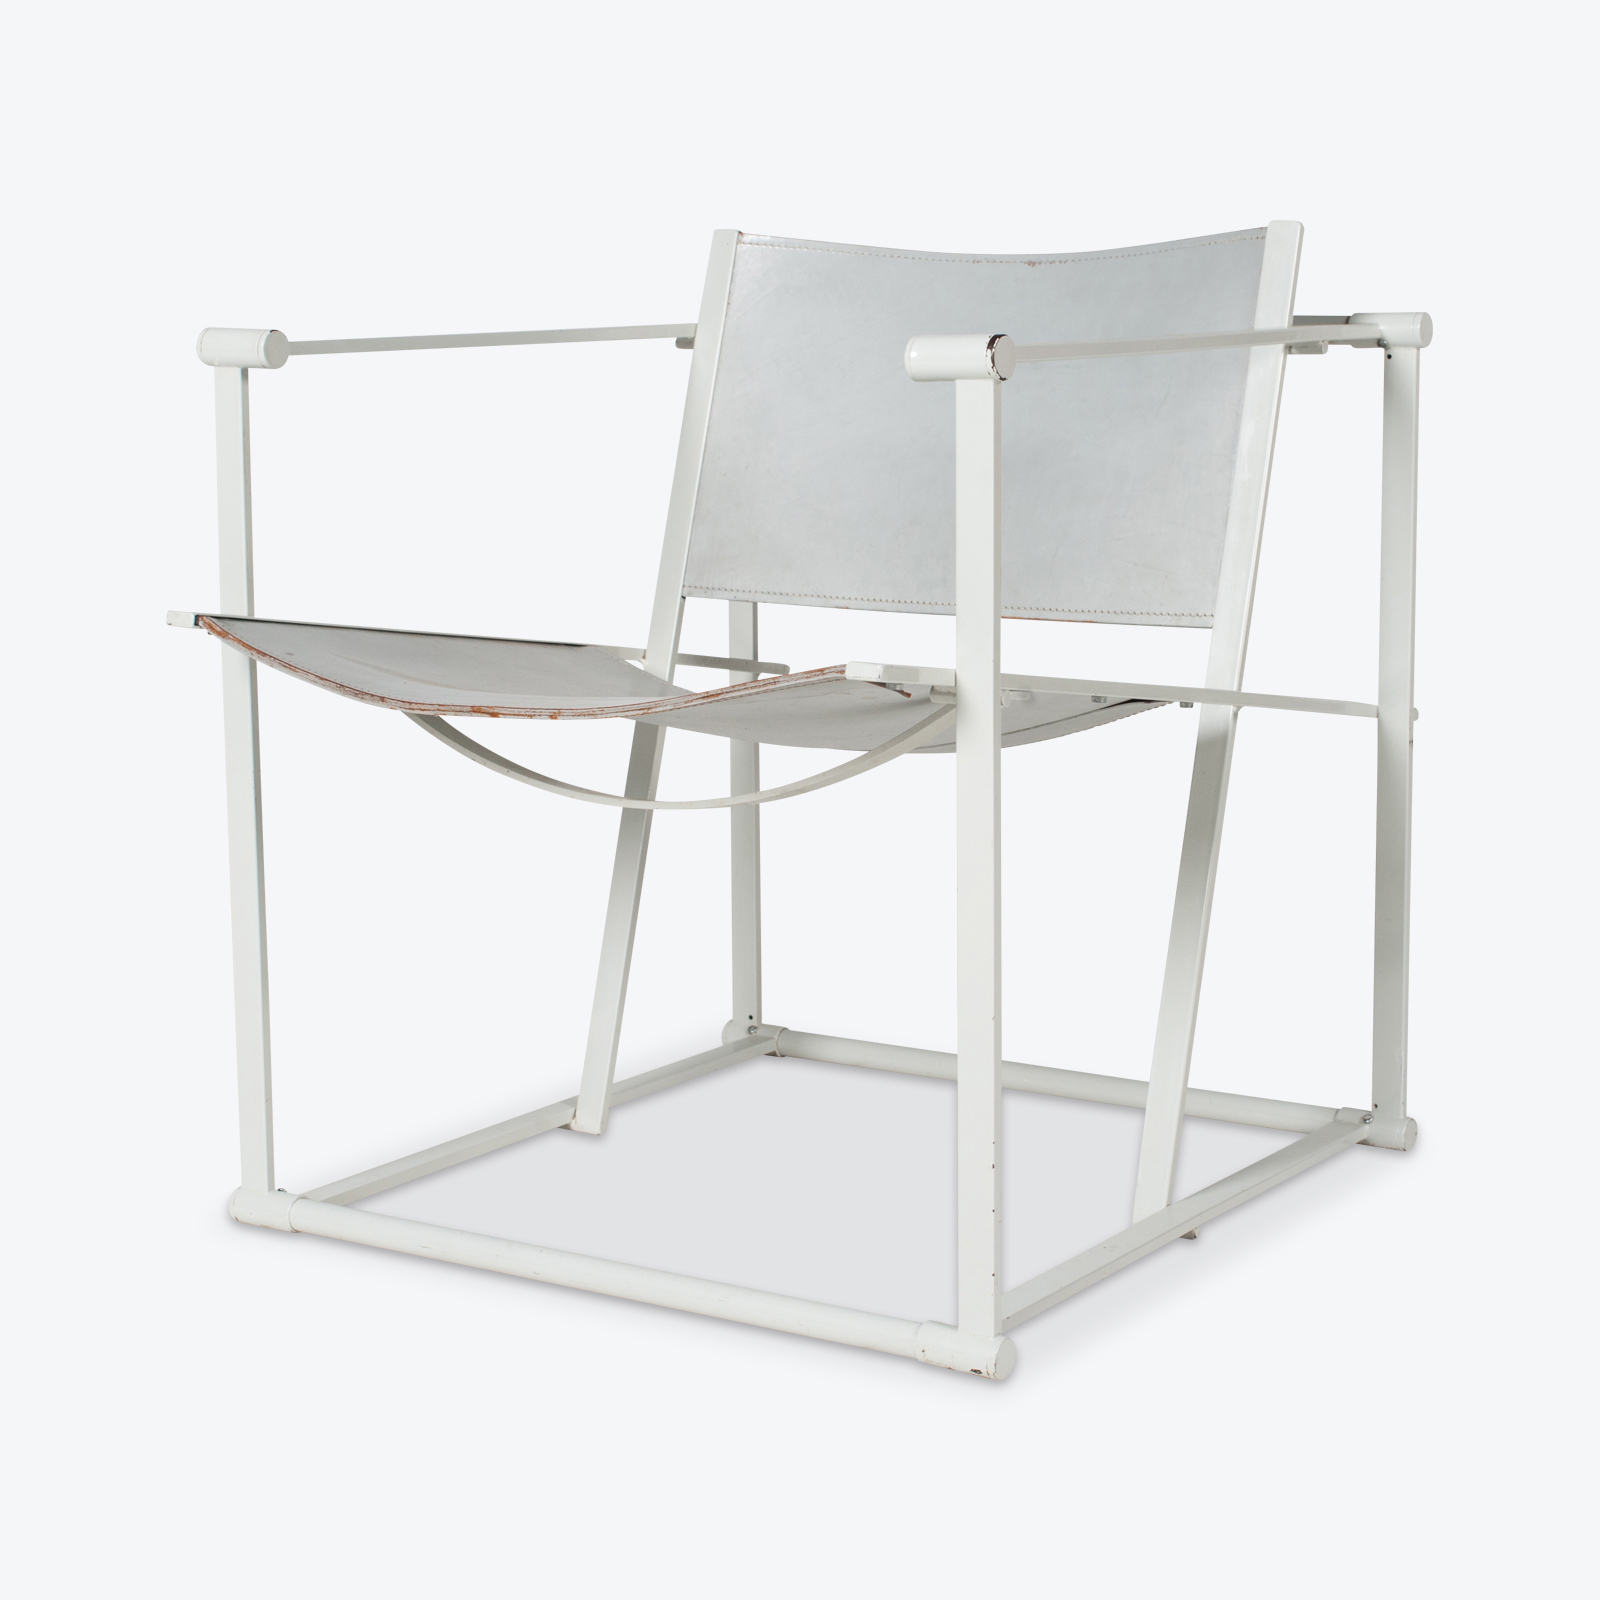 Fm60 Cubic Chairs In White Steel With Grey Leather By Radboud Van Beekum For Pastoe, The Netherlands Hero 1